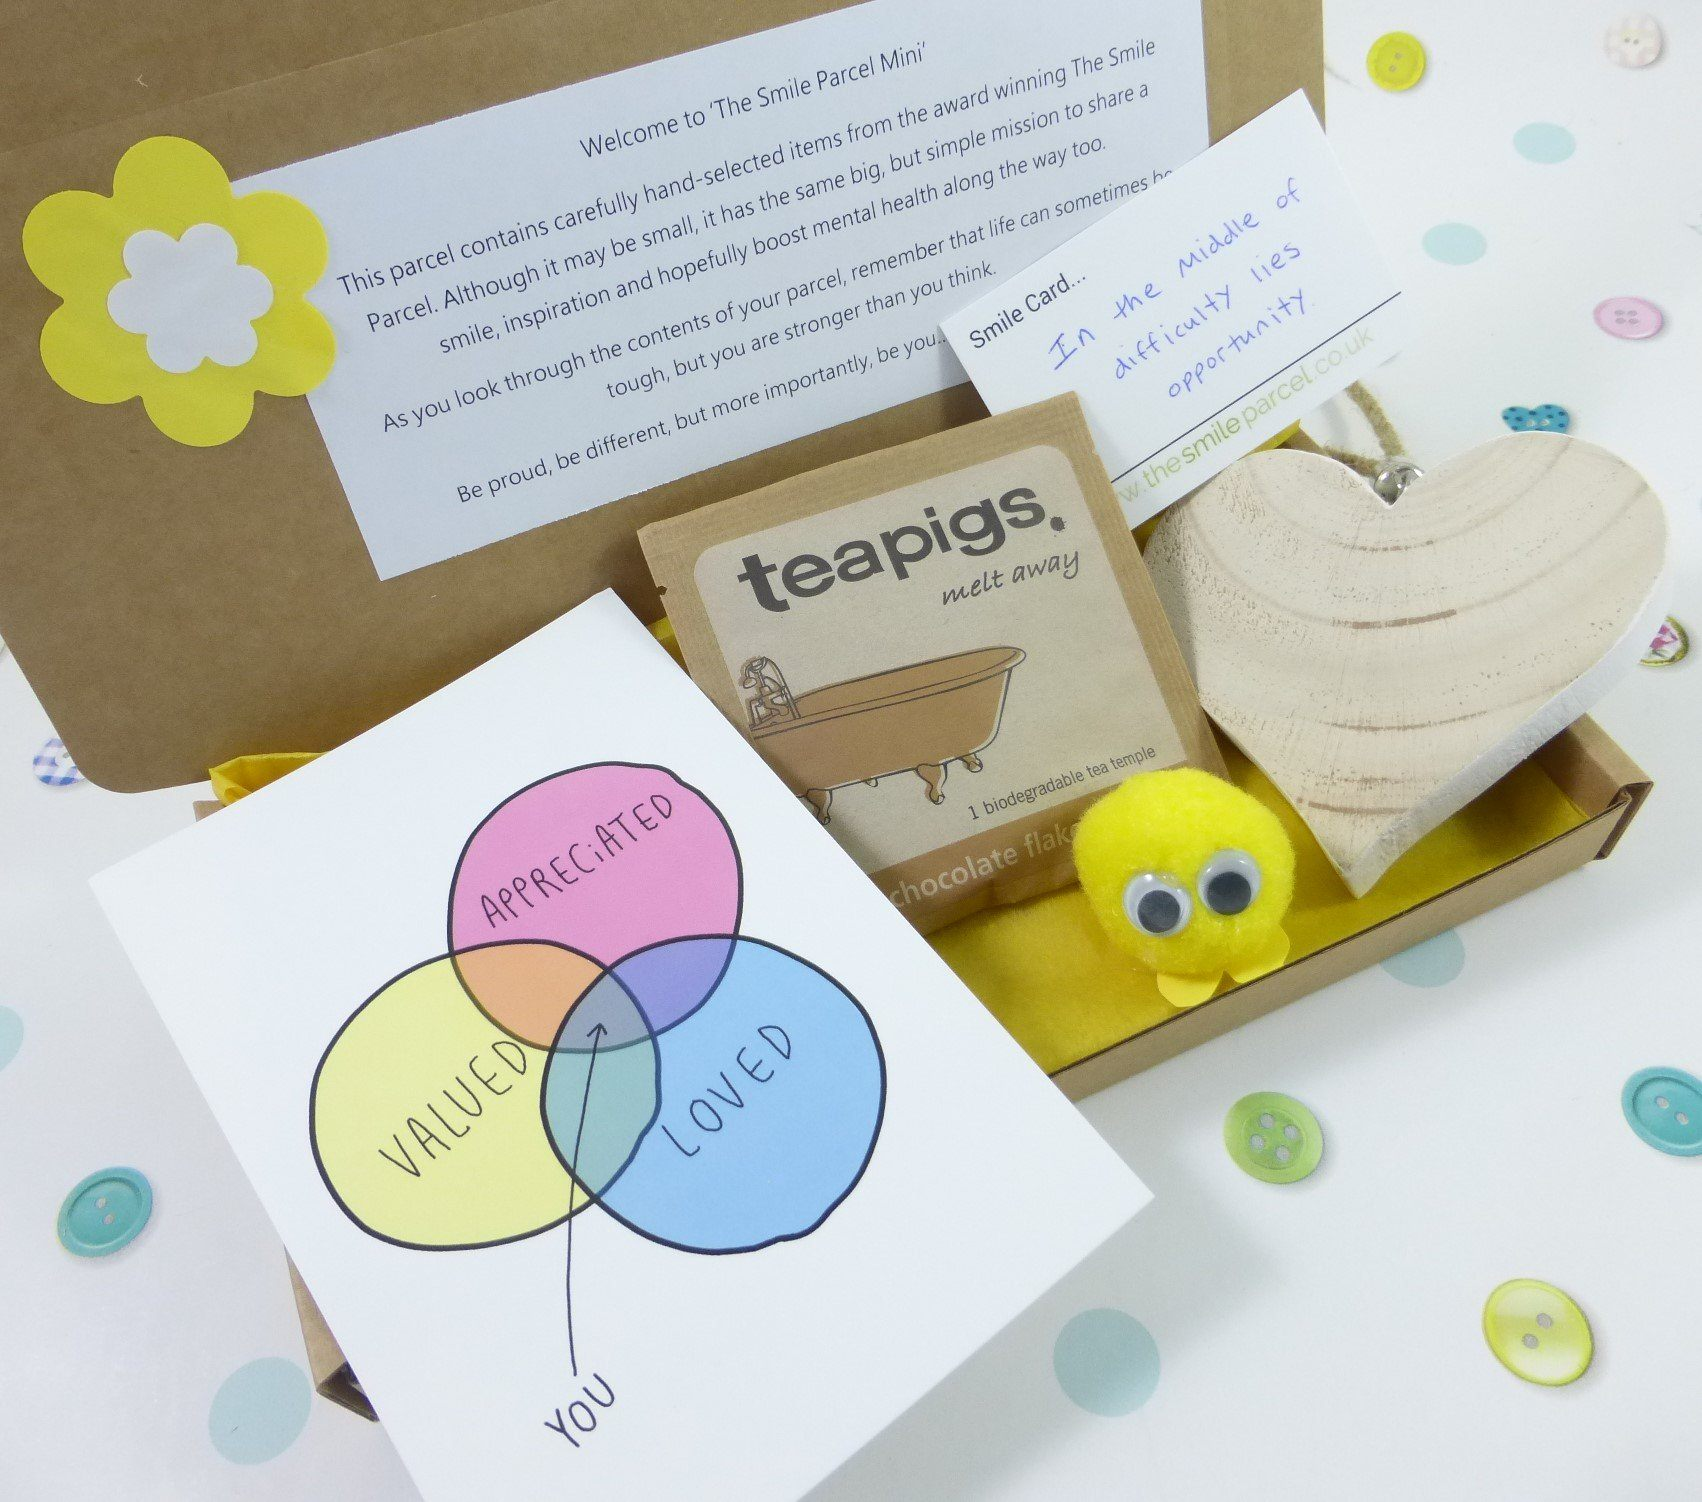 Yellow Letterbox Friendly, Pick Me Up Gift, The Smile Parcel Mini, Self Care Box, Mental Health Gift, Wellbeing Box, Happy Mail Kind Shop